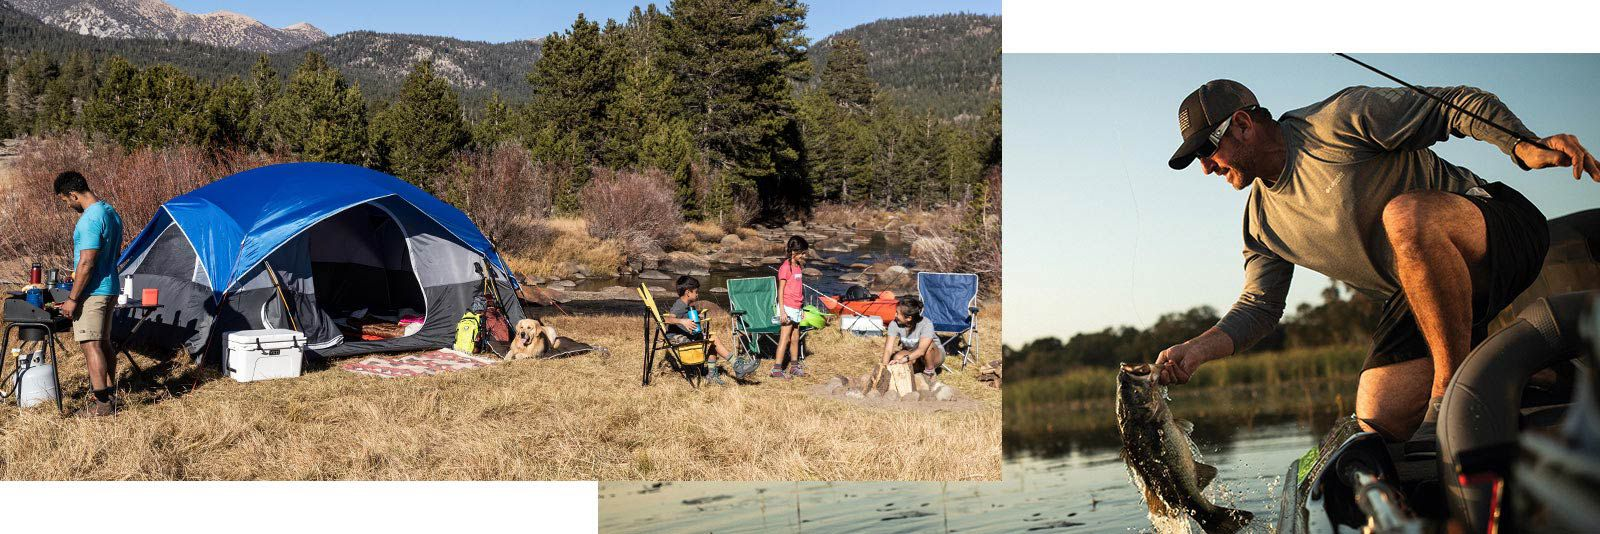 Image features a variety of family oriented outdoor activities.